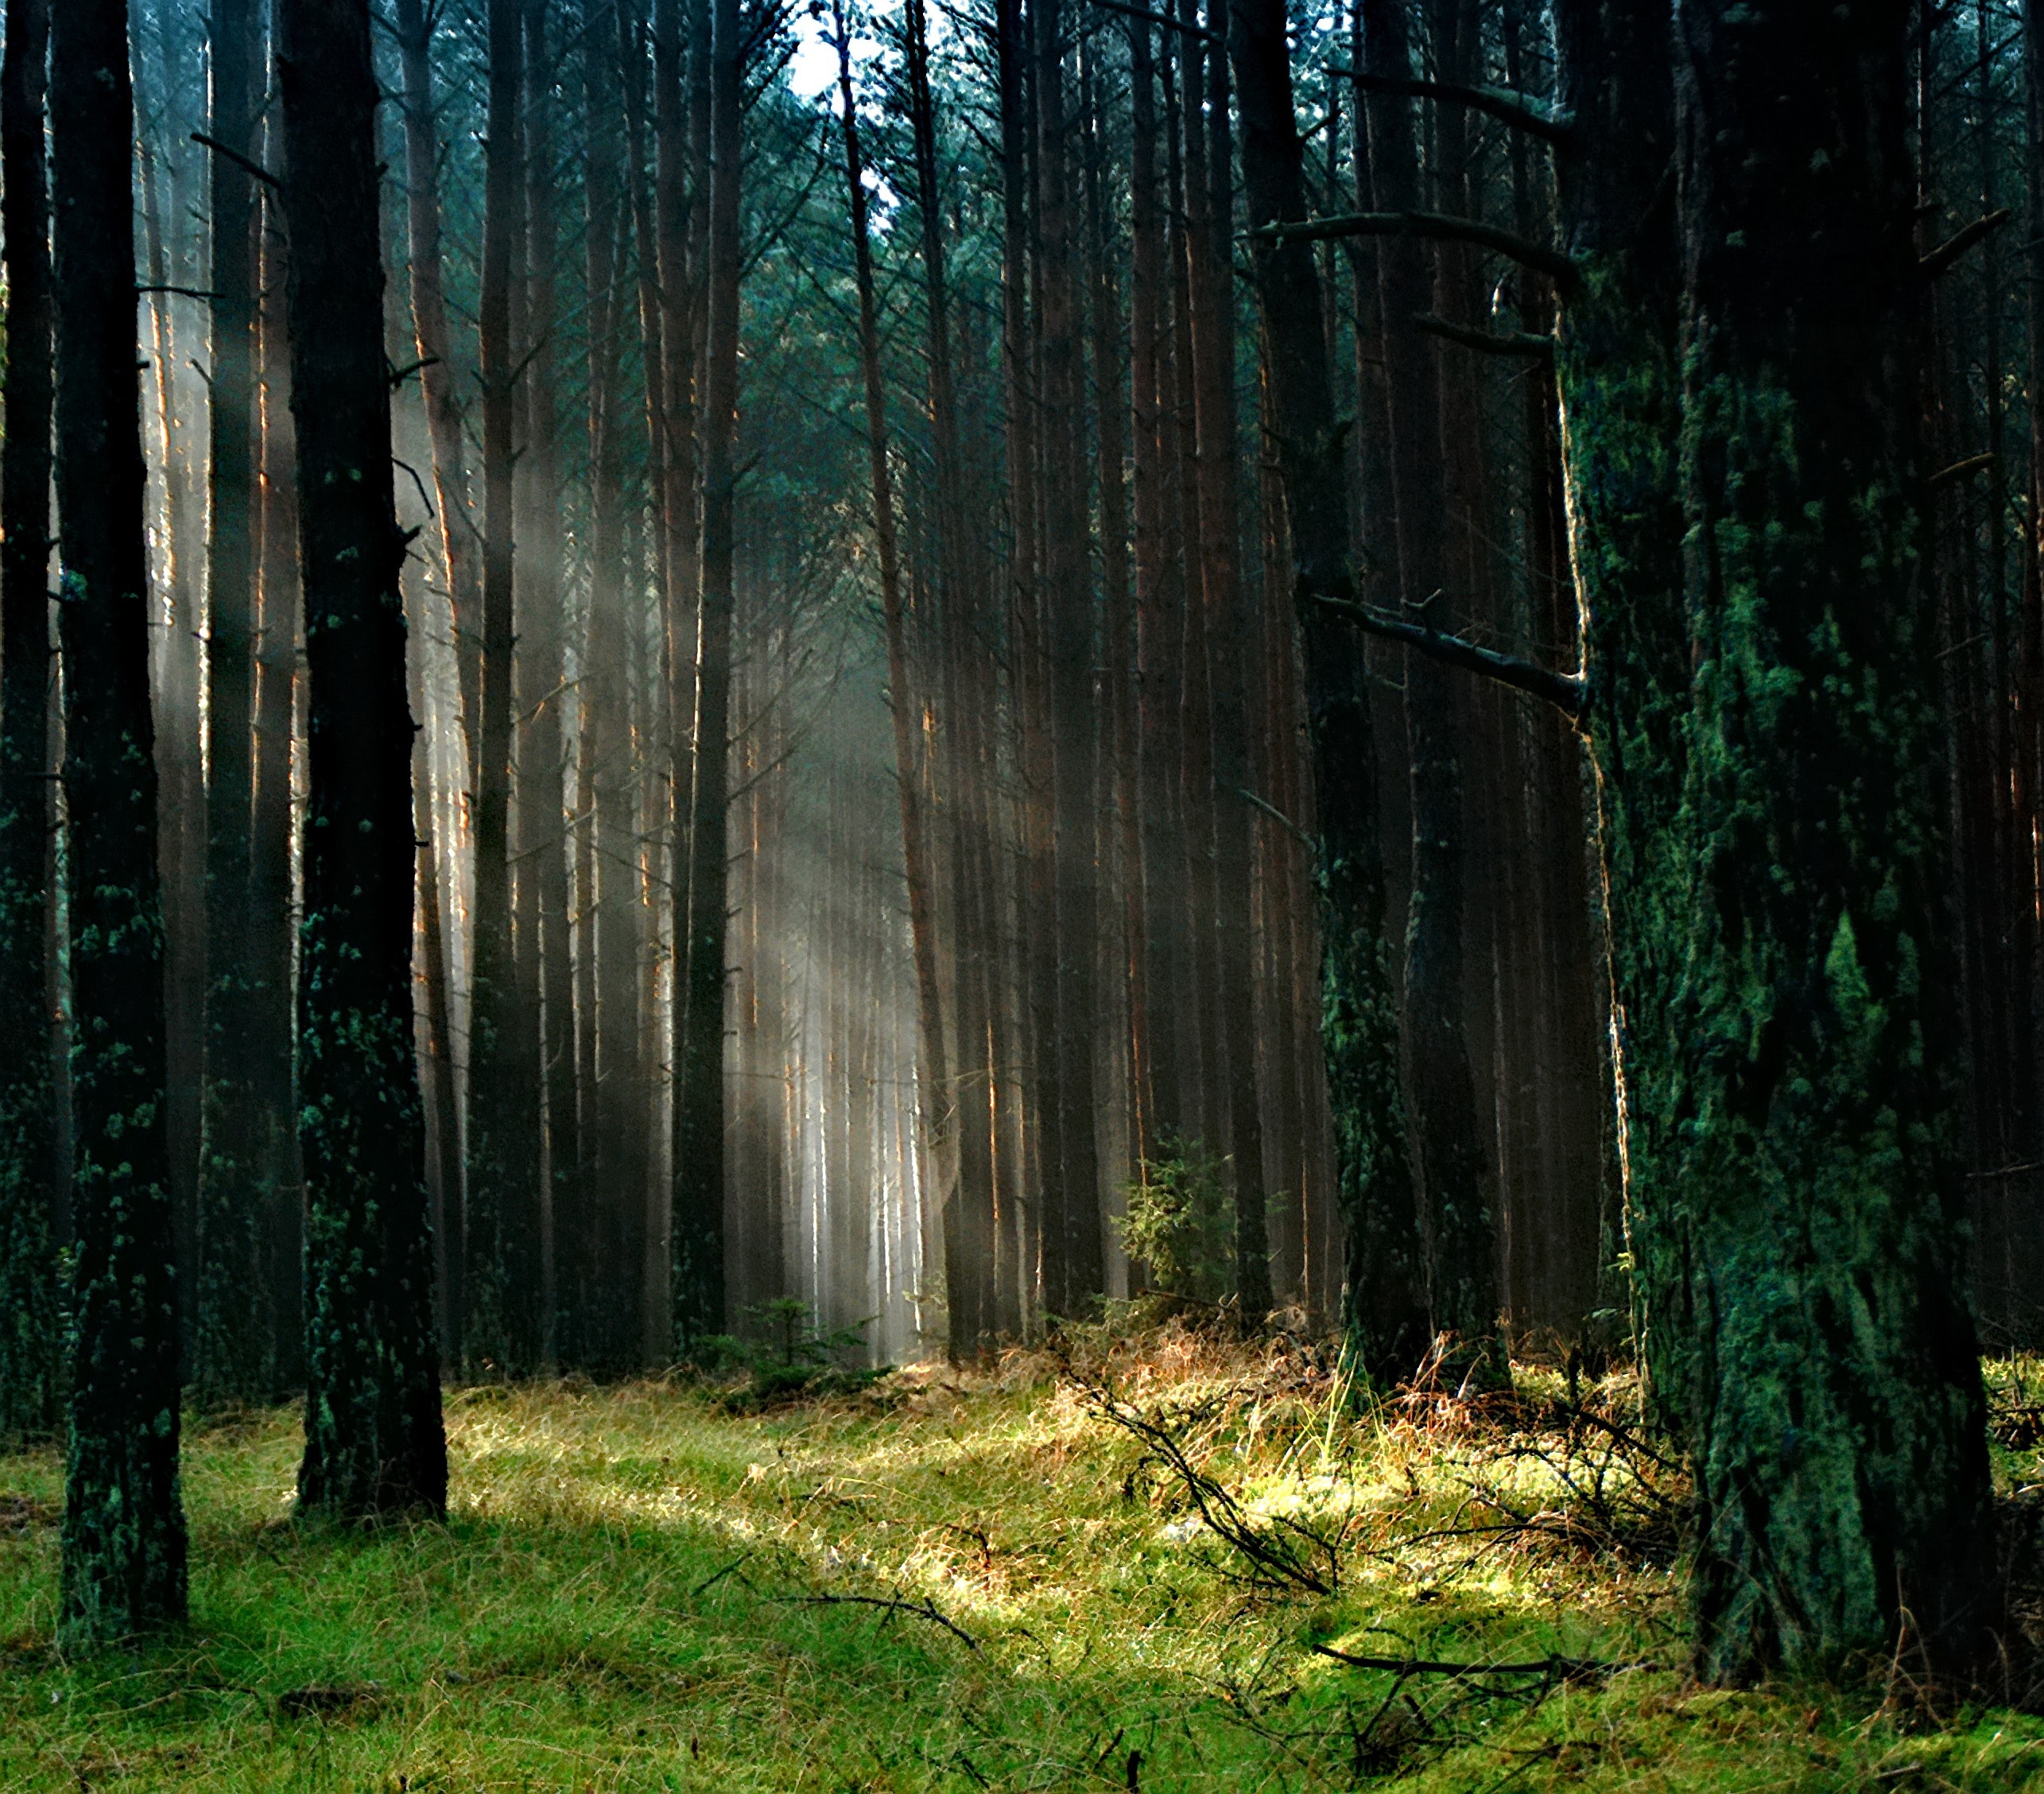 Forest With Sunlight, Woods, Trees, Sunlight, Grass, HQ Photo